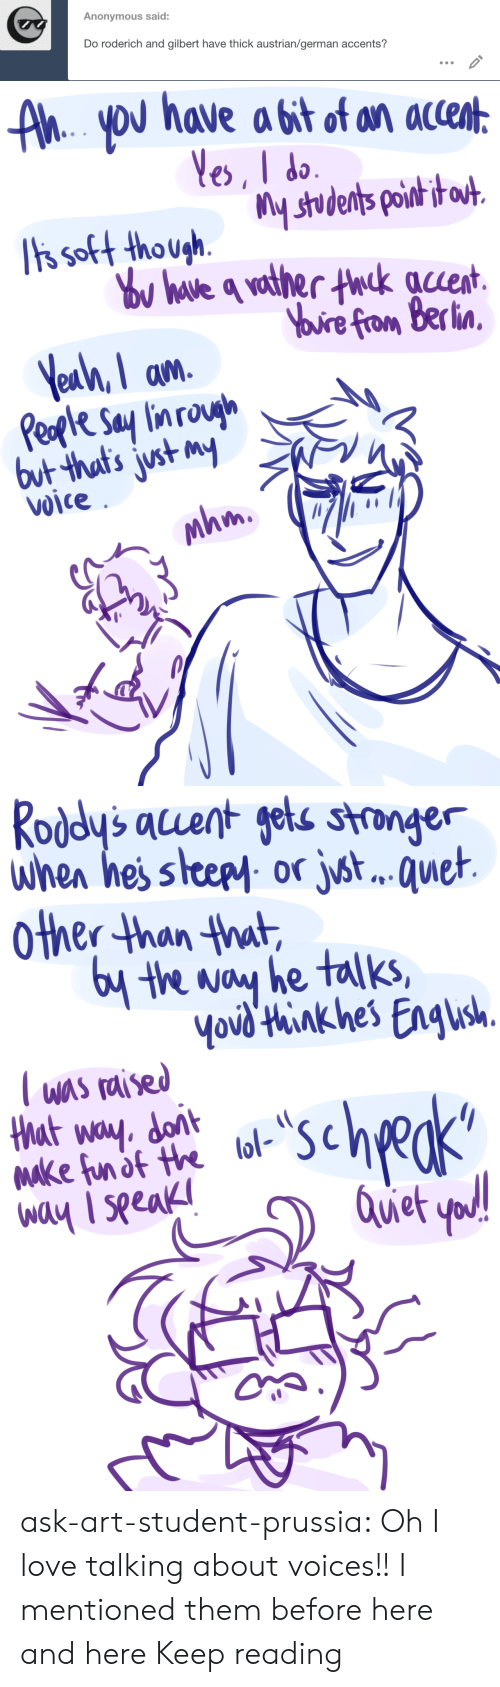 Prussia: Anonymous said:  Do roderich and gilbert have thick austrian/german accents?   AhYoU have a bit of an accent  Yes, I do  ts soft though.  Tis soft thoushstudents poih i  ou have q vather thck auent  Yuire from Berlin  Yeah, I am  Peple Say lin rough  but that's just my  Voice  mhm   Roddy's acuent gets stronger  when hes steepy or jst.. . quet  other than that  6y the way he talks,  Yovd'think hes Engush  T was raised  that way. dont  Make fun of the lol-  way I seeak  scheks  Quet yod! ask-art-student-prussia:  Oh I love talking about voices!! I mentioned them before here and here Keep reading